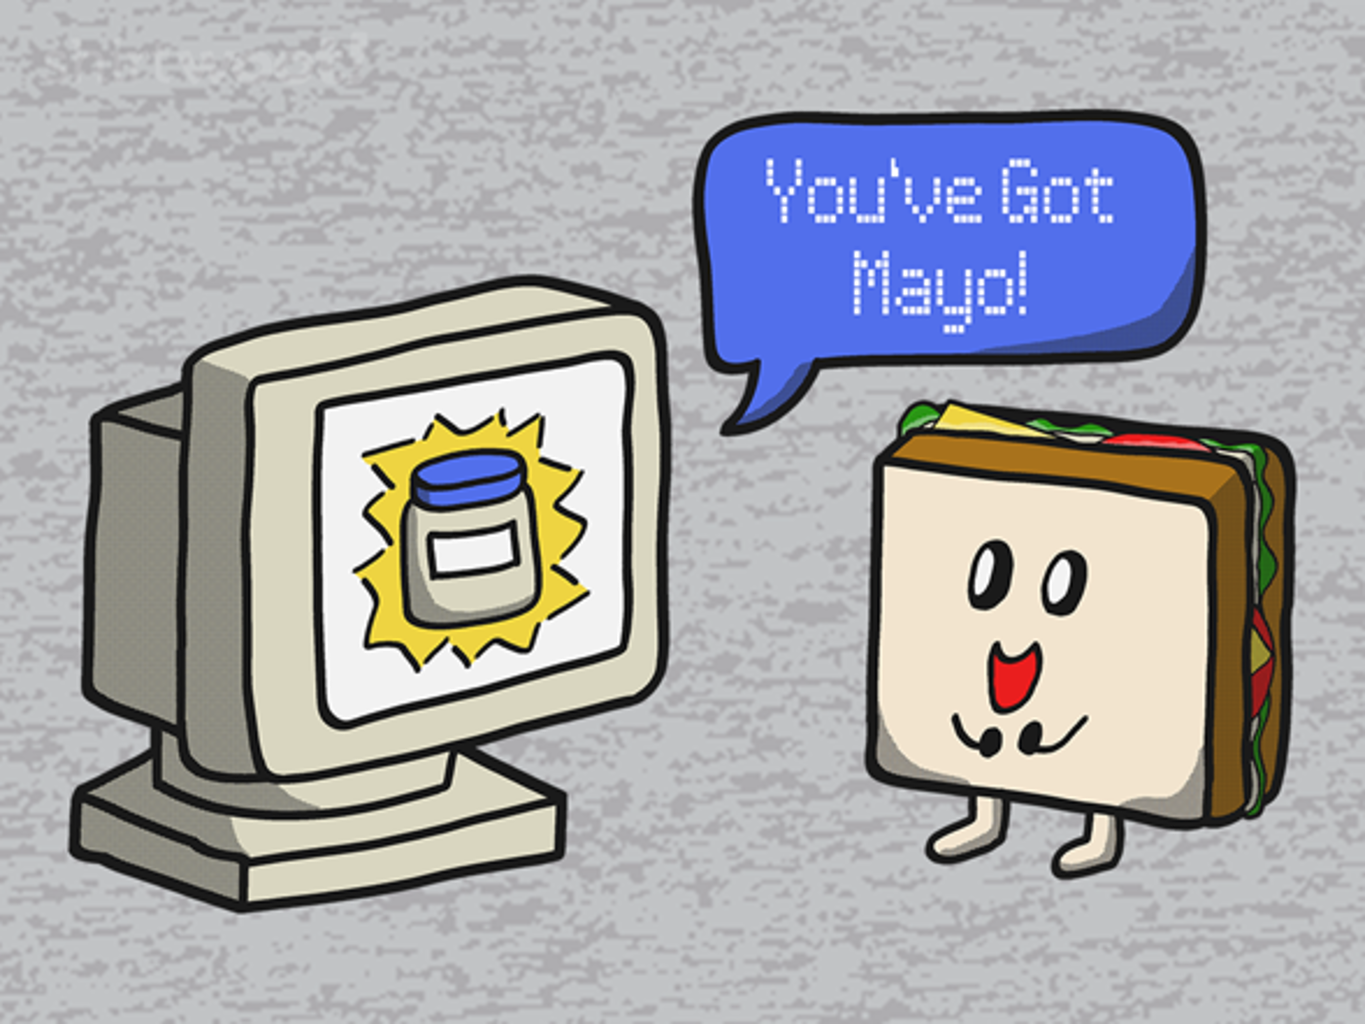 Woot!: You've Got Mayo